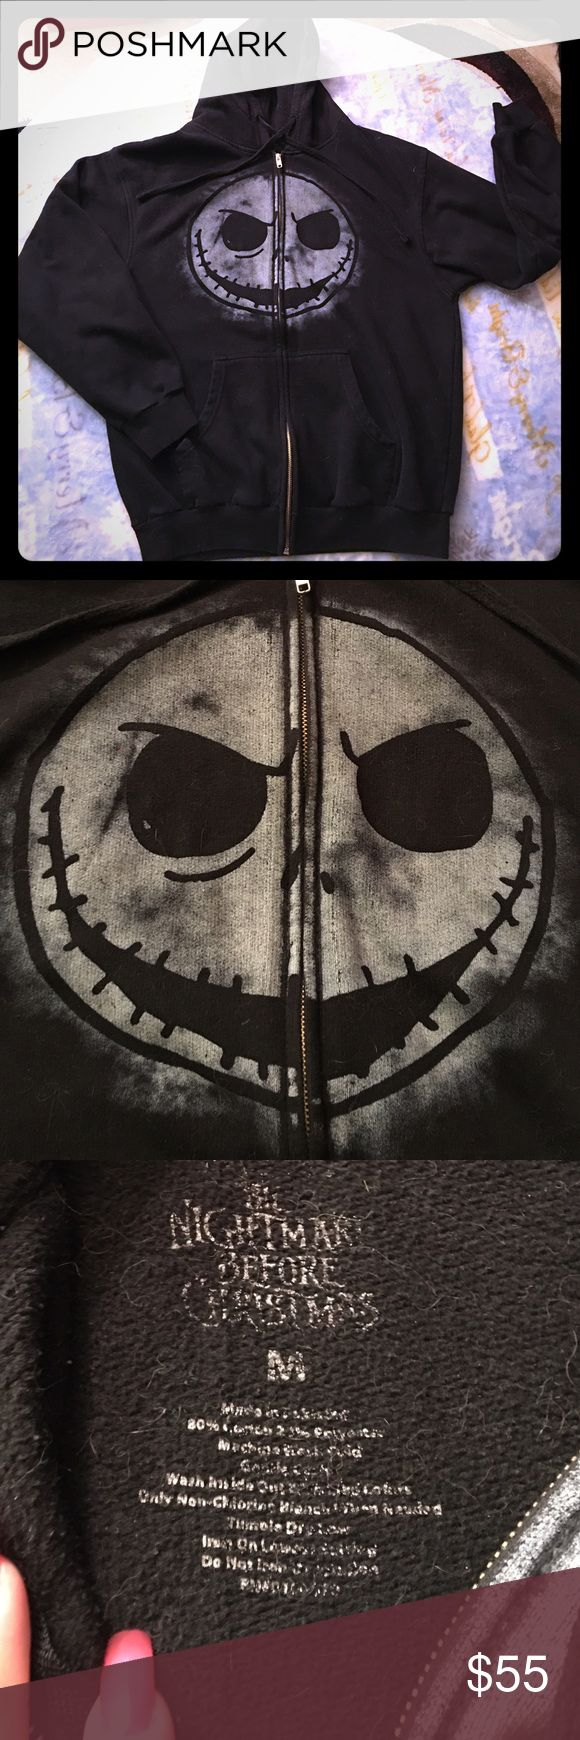 Spotted while shopping on Poshmark: The Nightmare Before Christmas Black Hoodie Sz M! #poshmark #fashion #shopping #style #Hot Topic #Jackets & Blazers